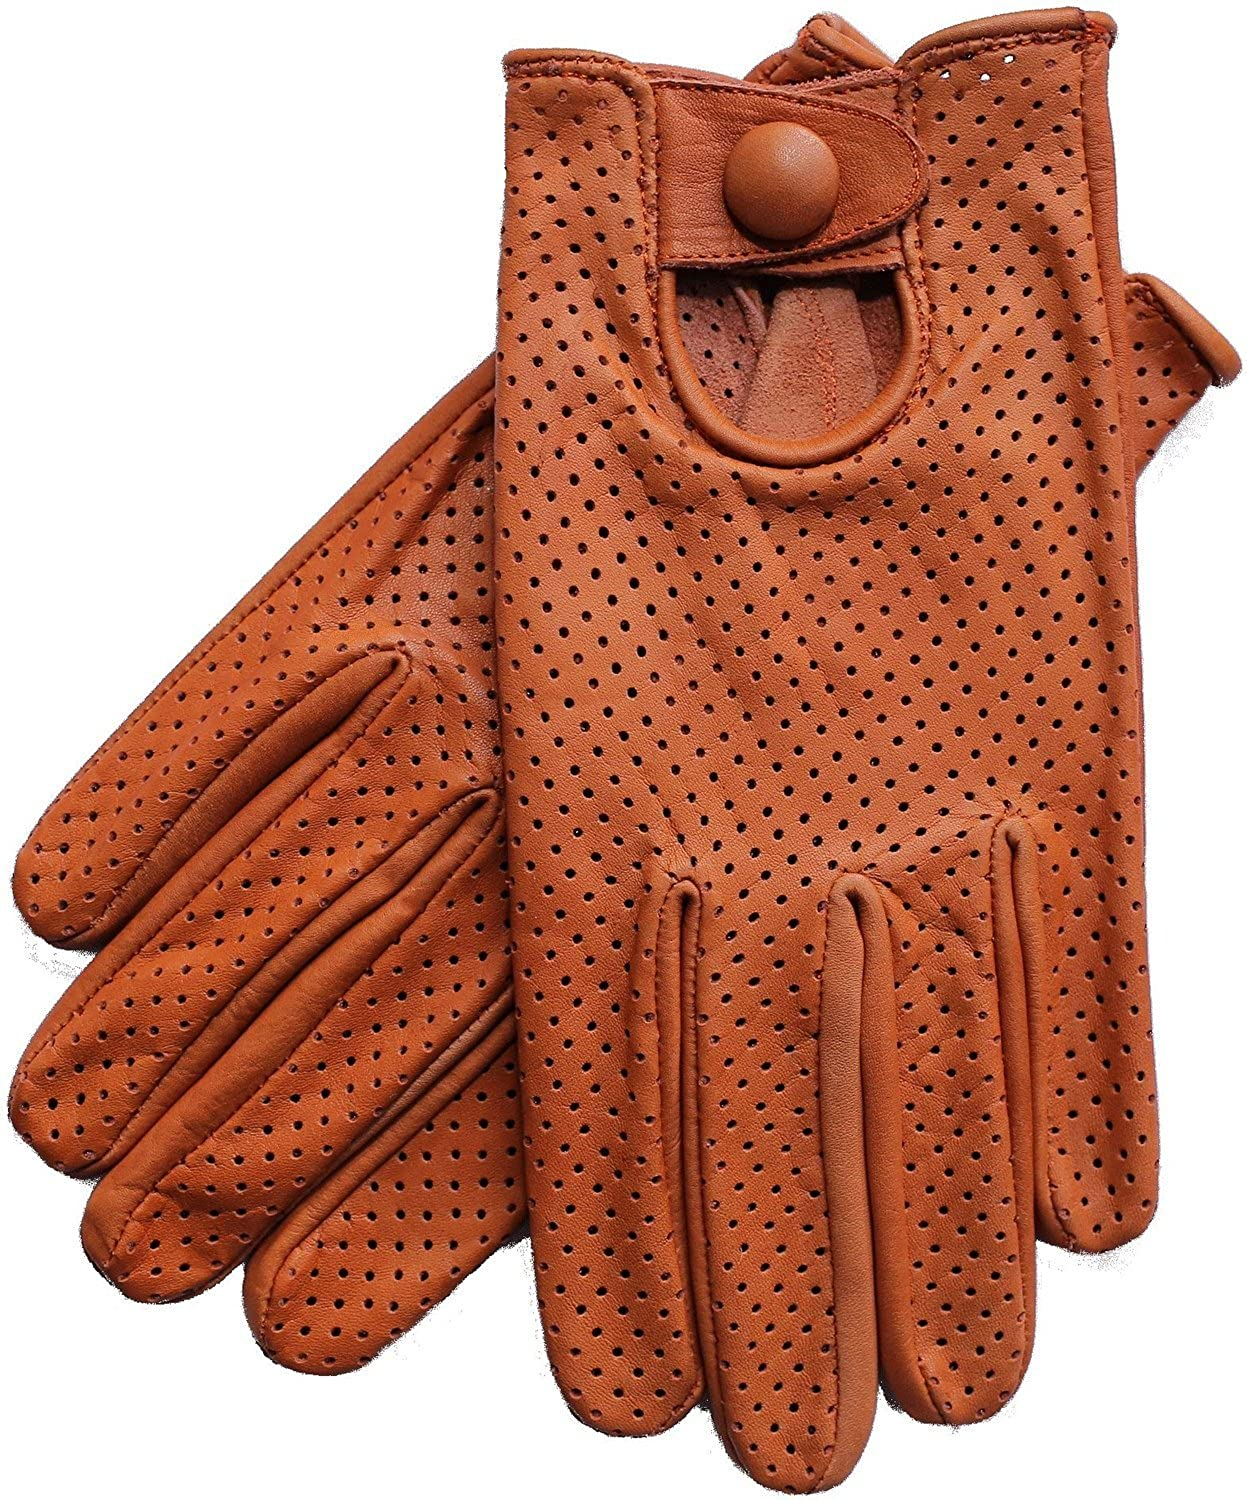 Mens leather gloves xl - Riparo Motorsports Men S Genuine Leather Mesh Perforated Summer Driving Motorcycle Gloves At Amazon Men S Clothing Store